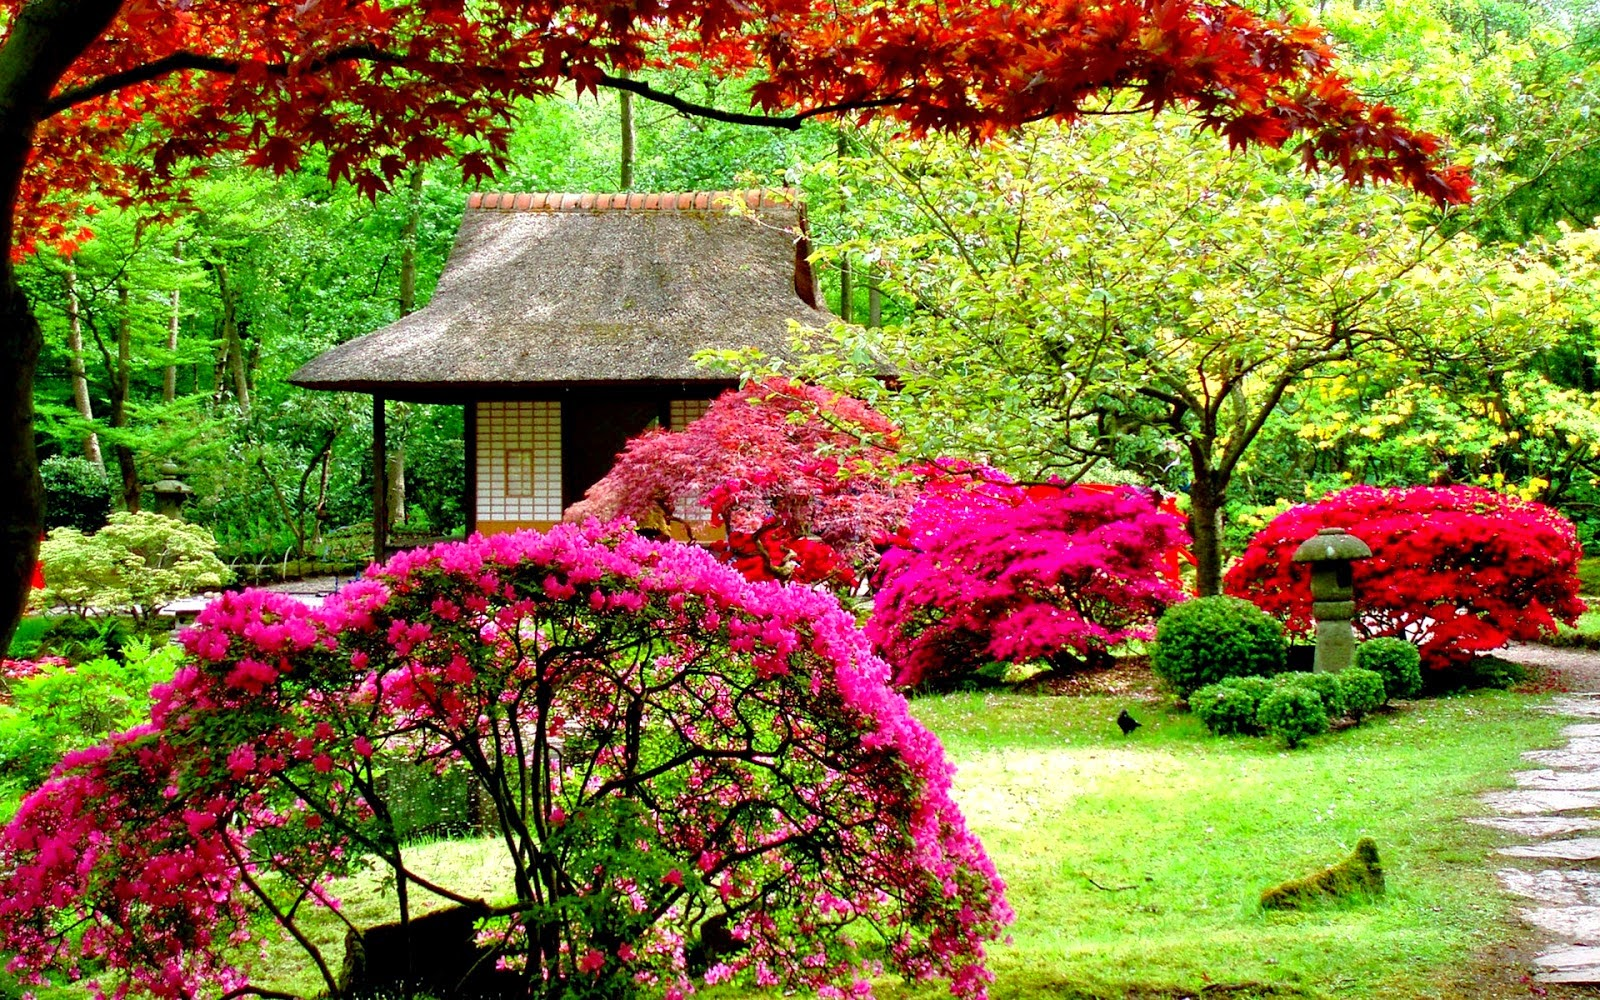 flower garden wallpaper free download|http://refreshrose.blogspot/